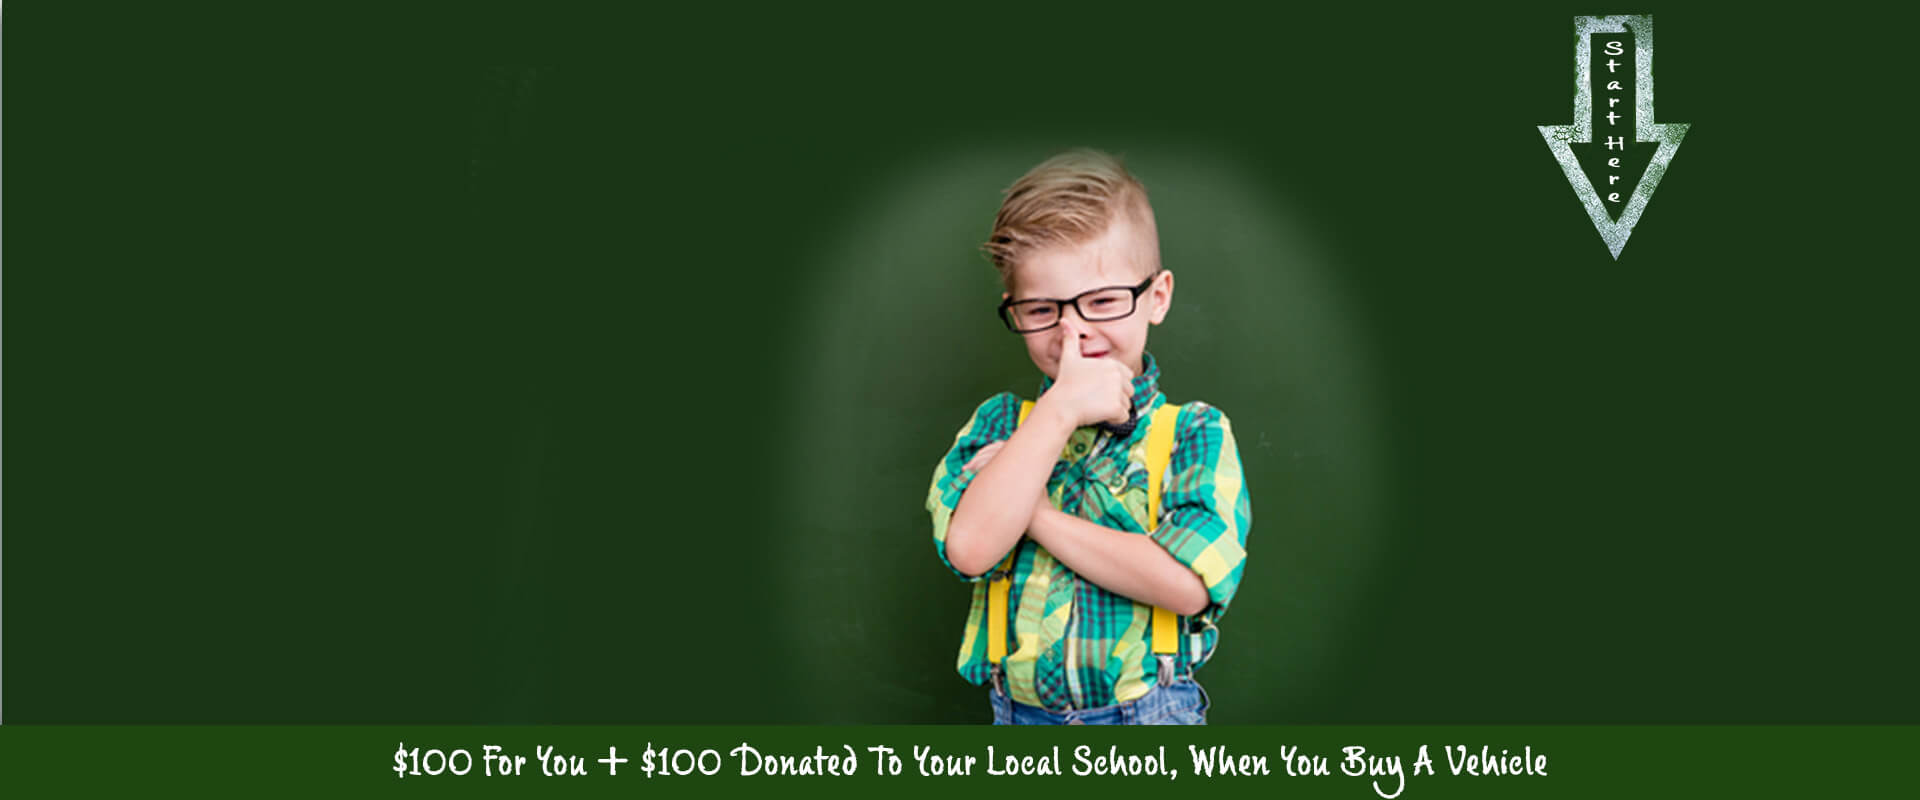 $100 donated to local school promotional banner